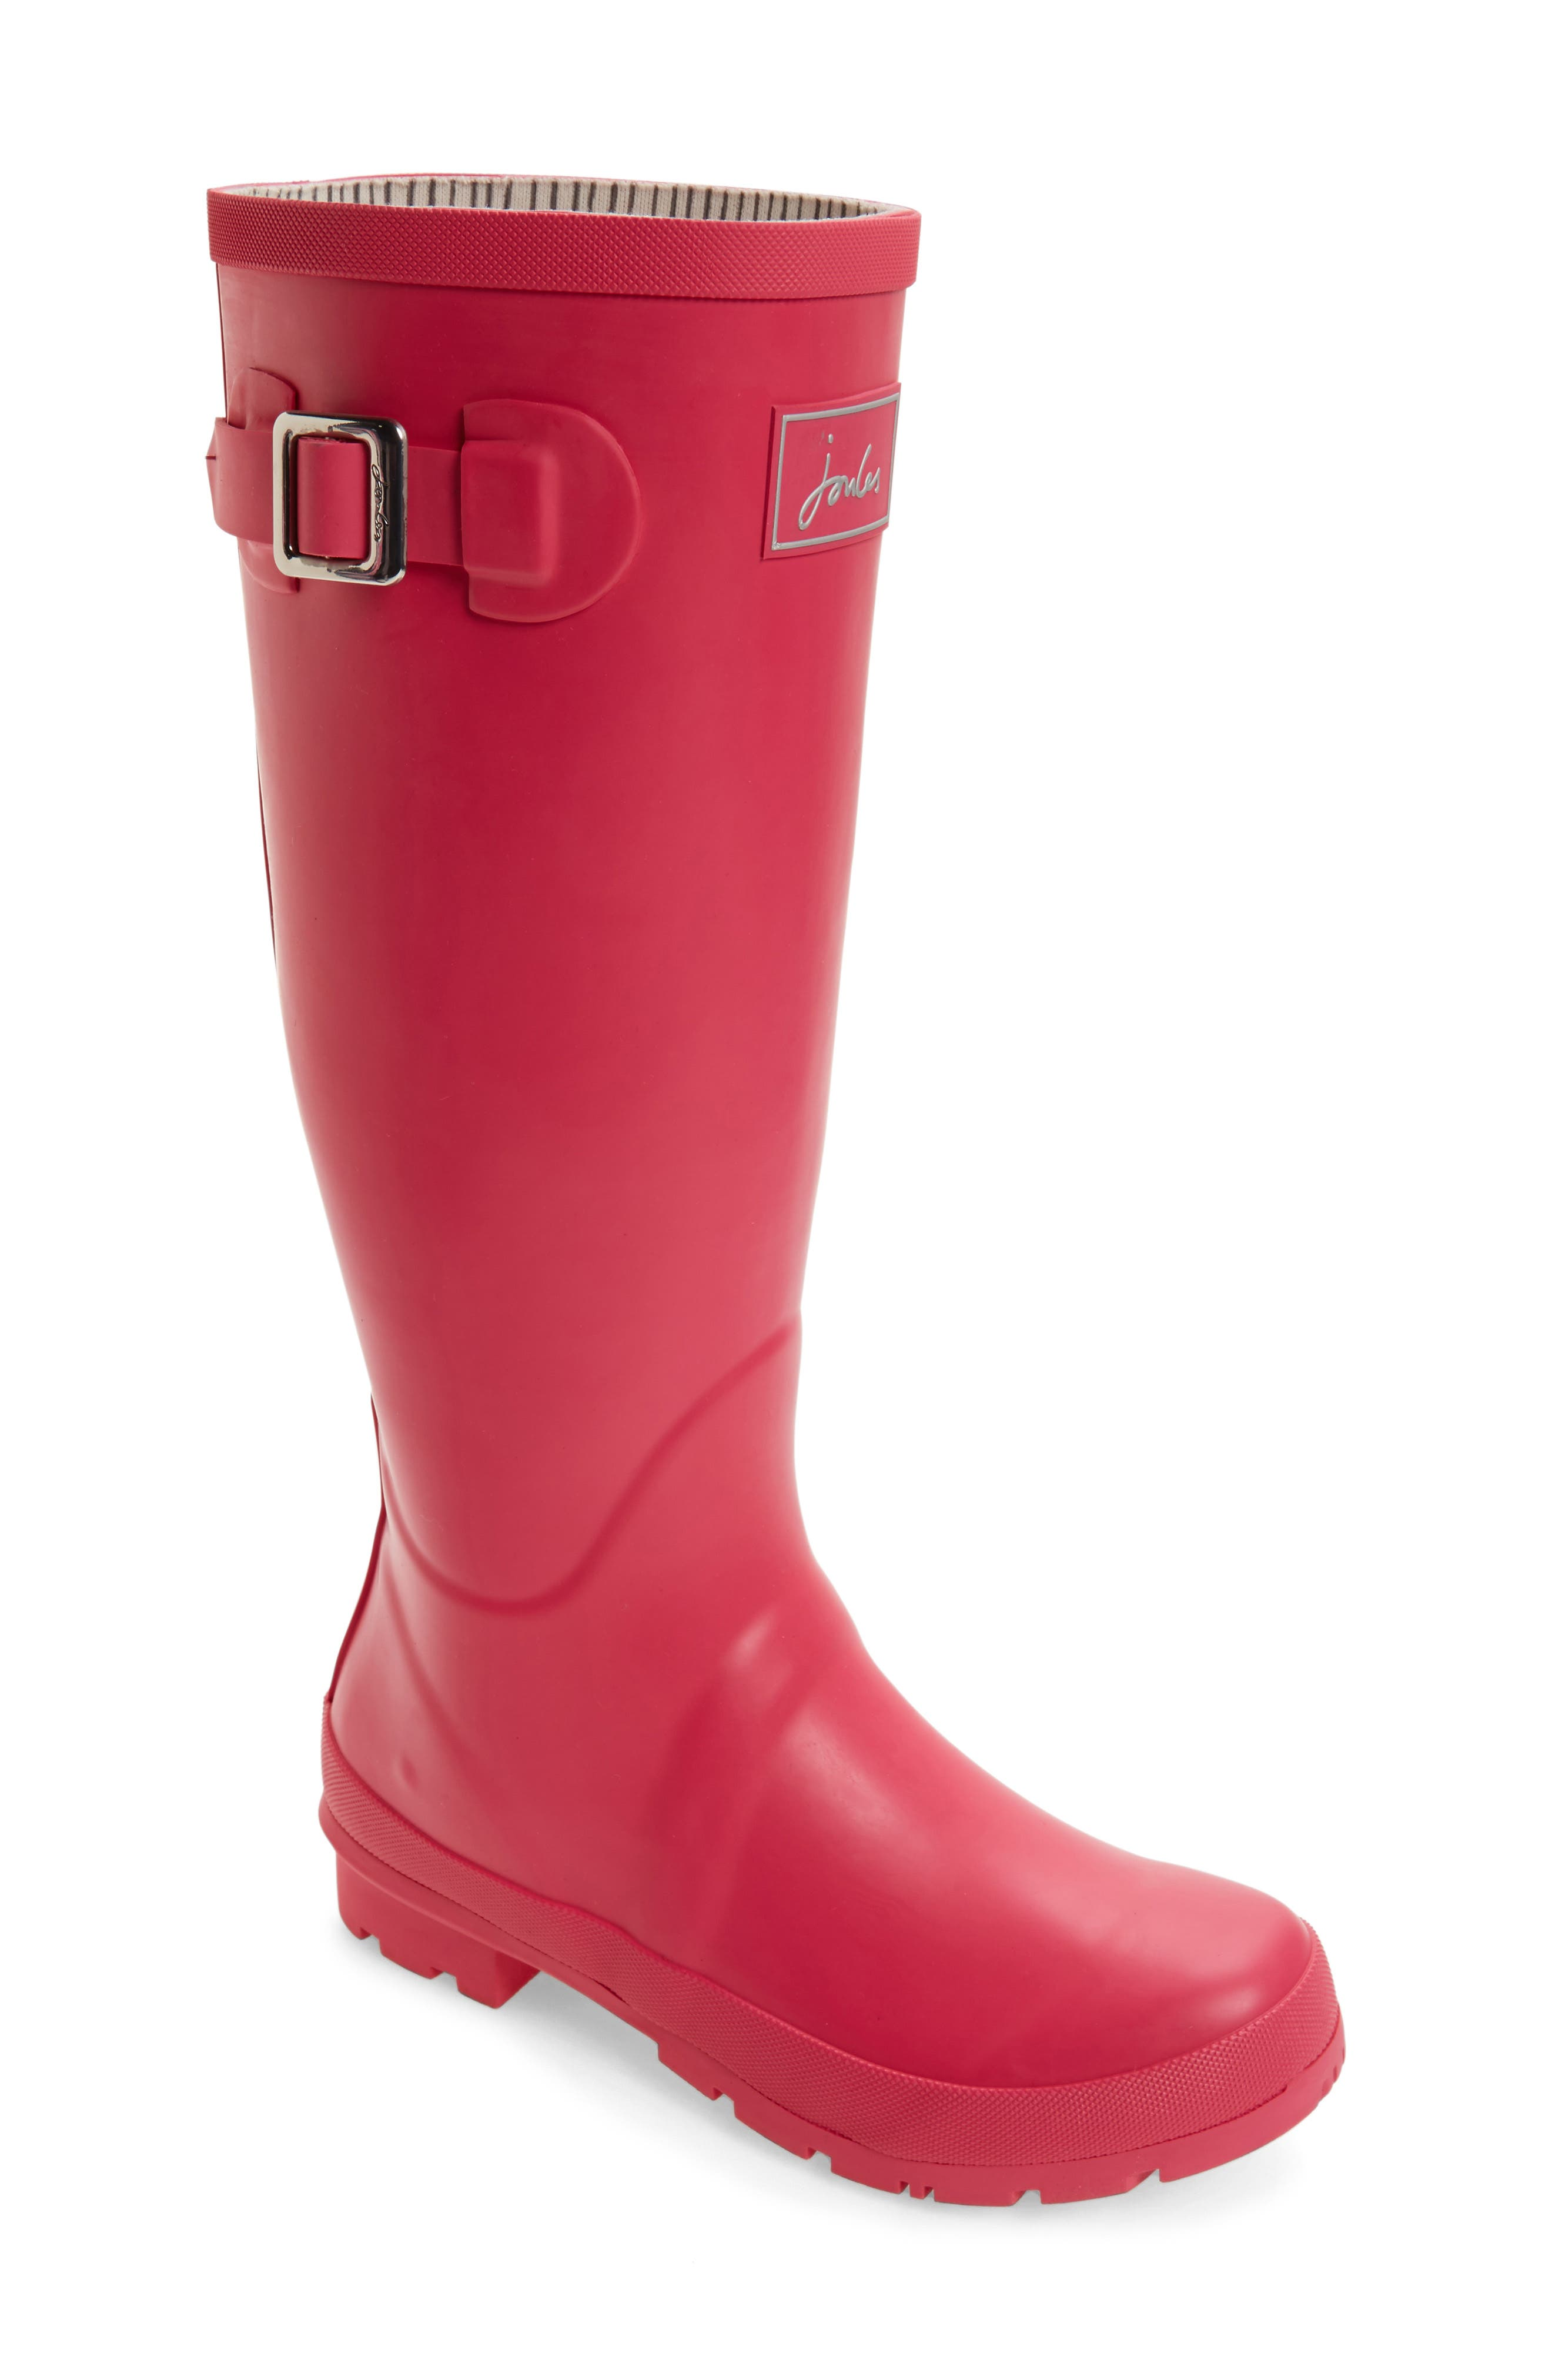 Main Image - Joules 'Field Welly' Rain Boot (Women)